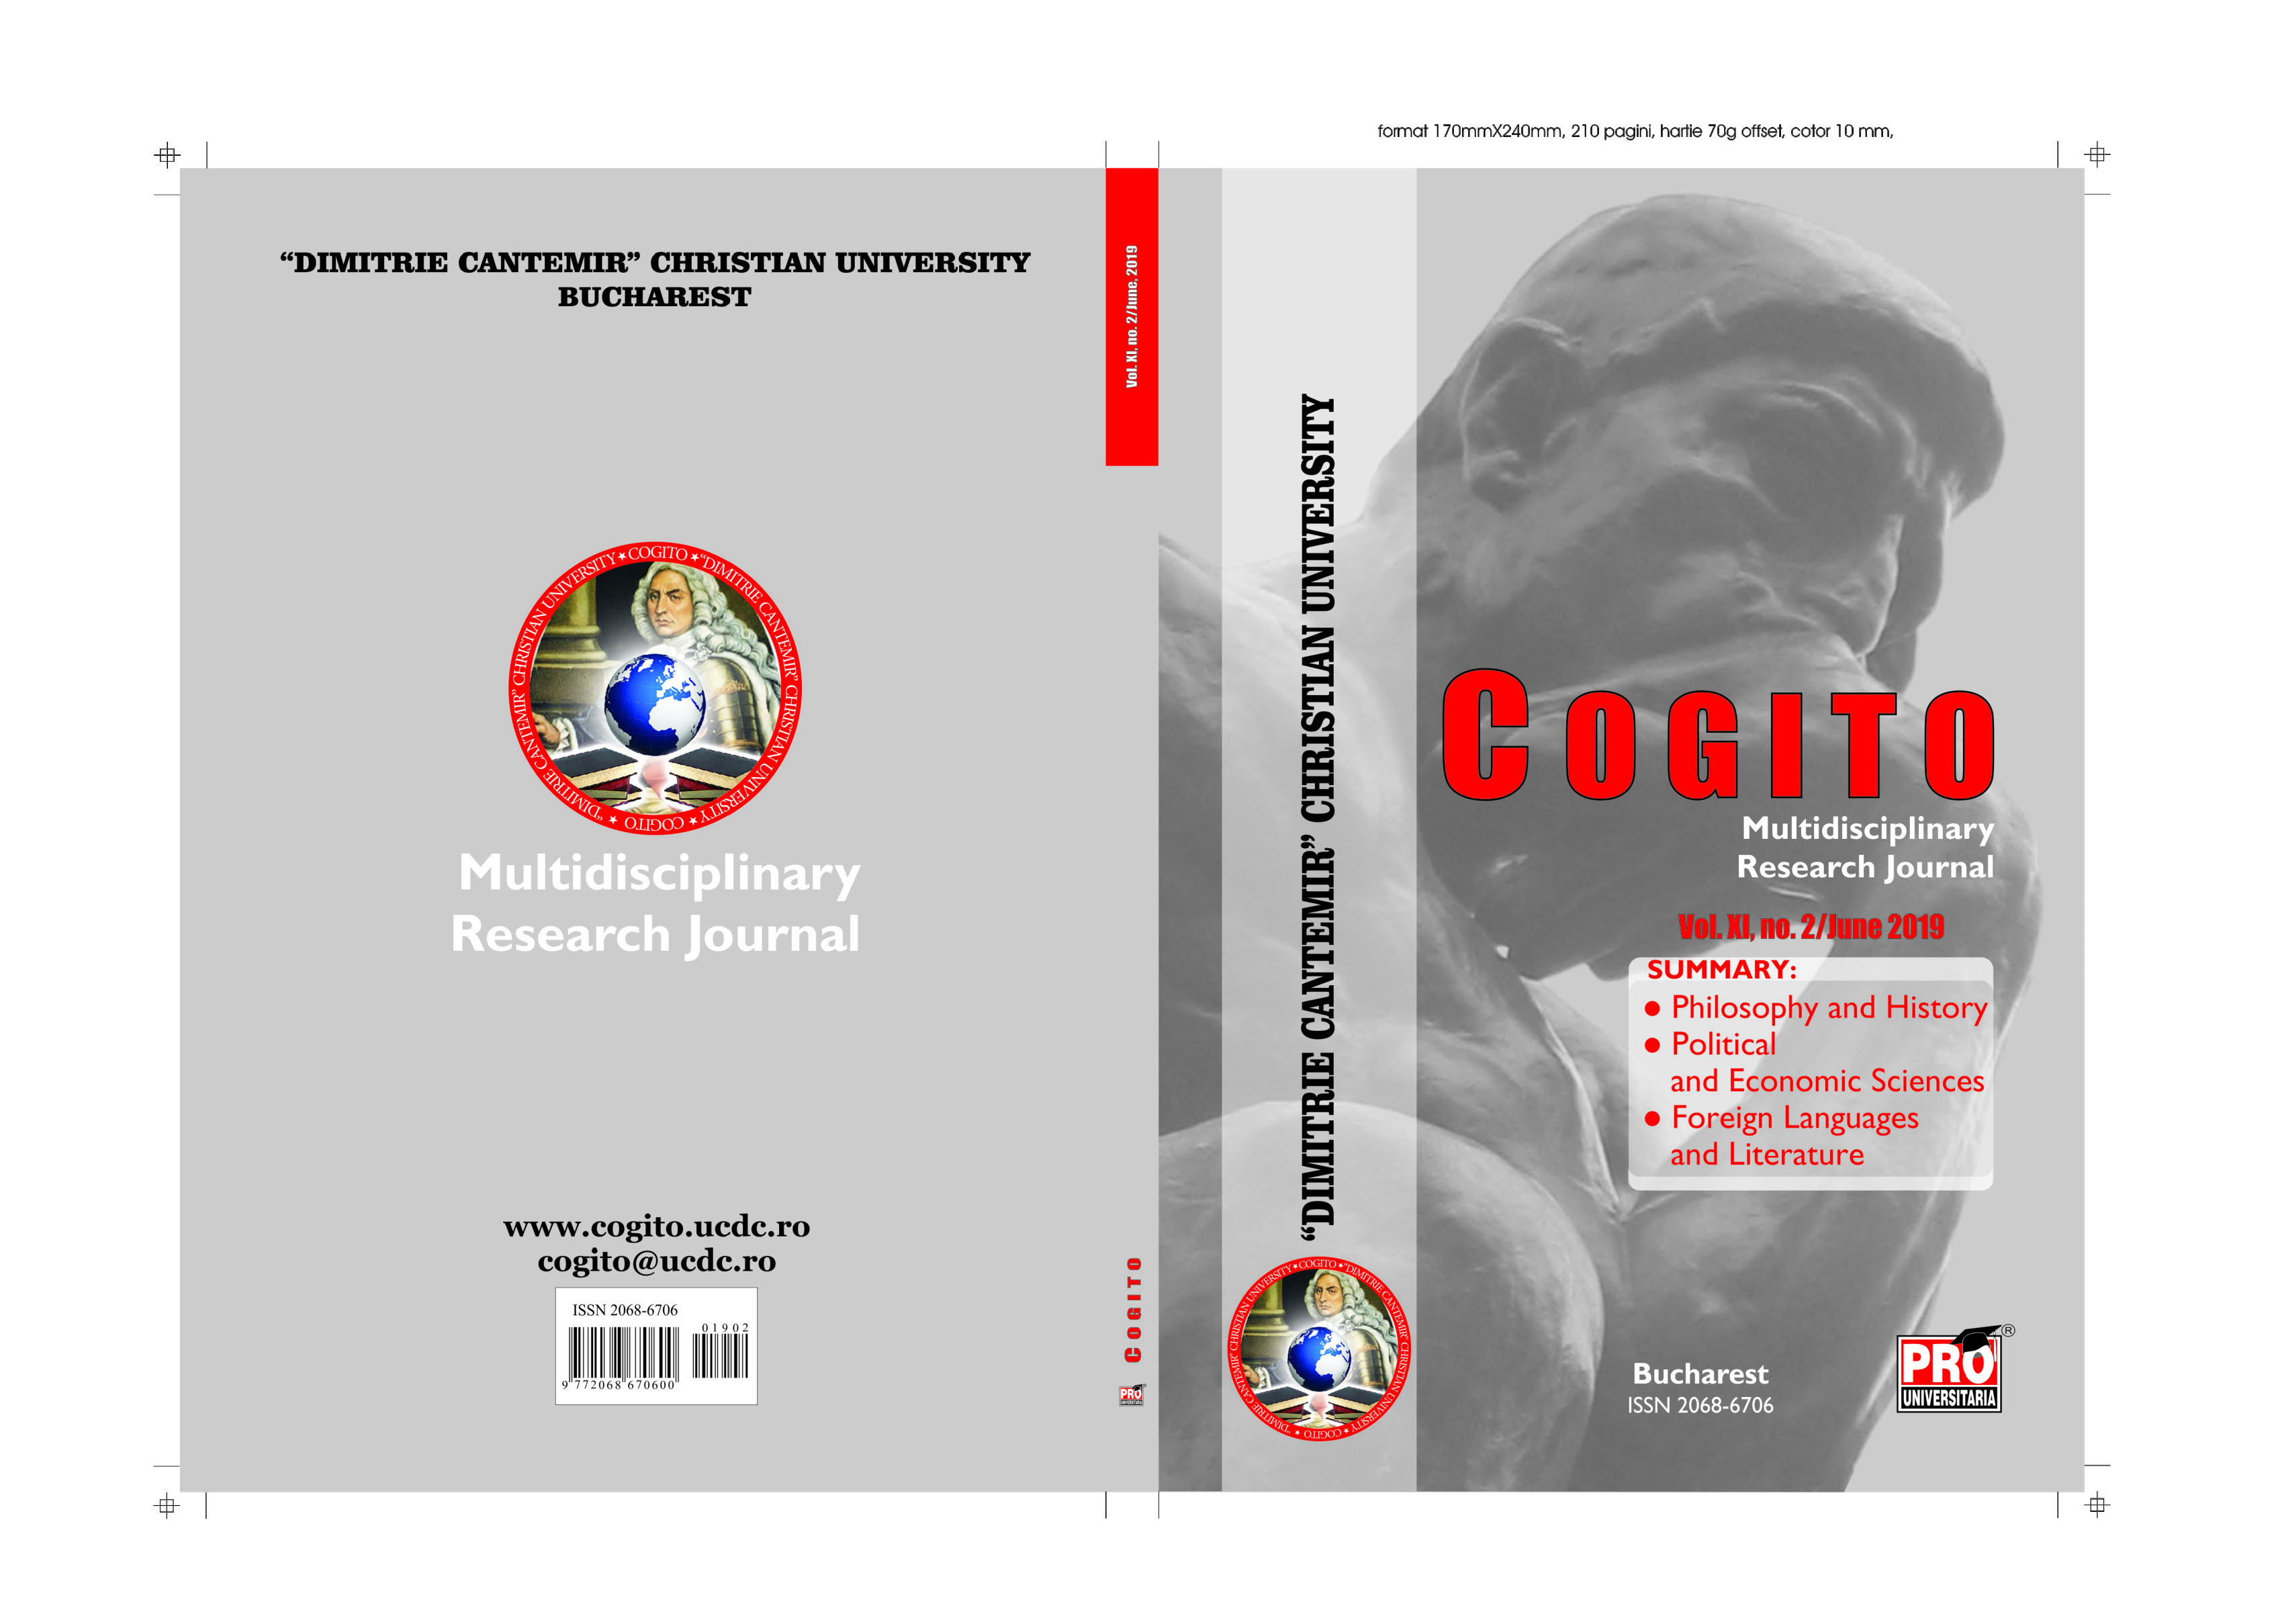 ARE WE HEADING TOWARDS A SELF-IMPOSED IRON CURTAIN? Cover Image